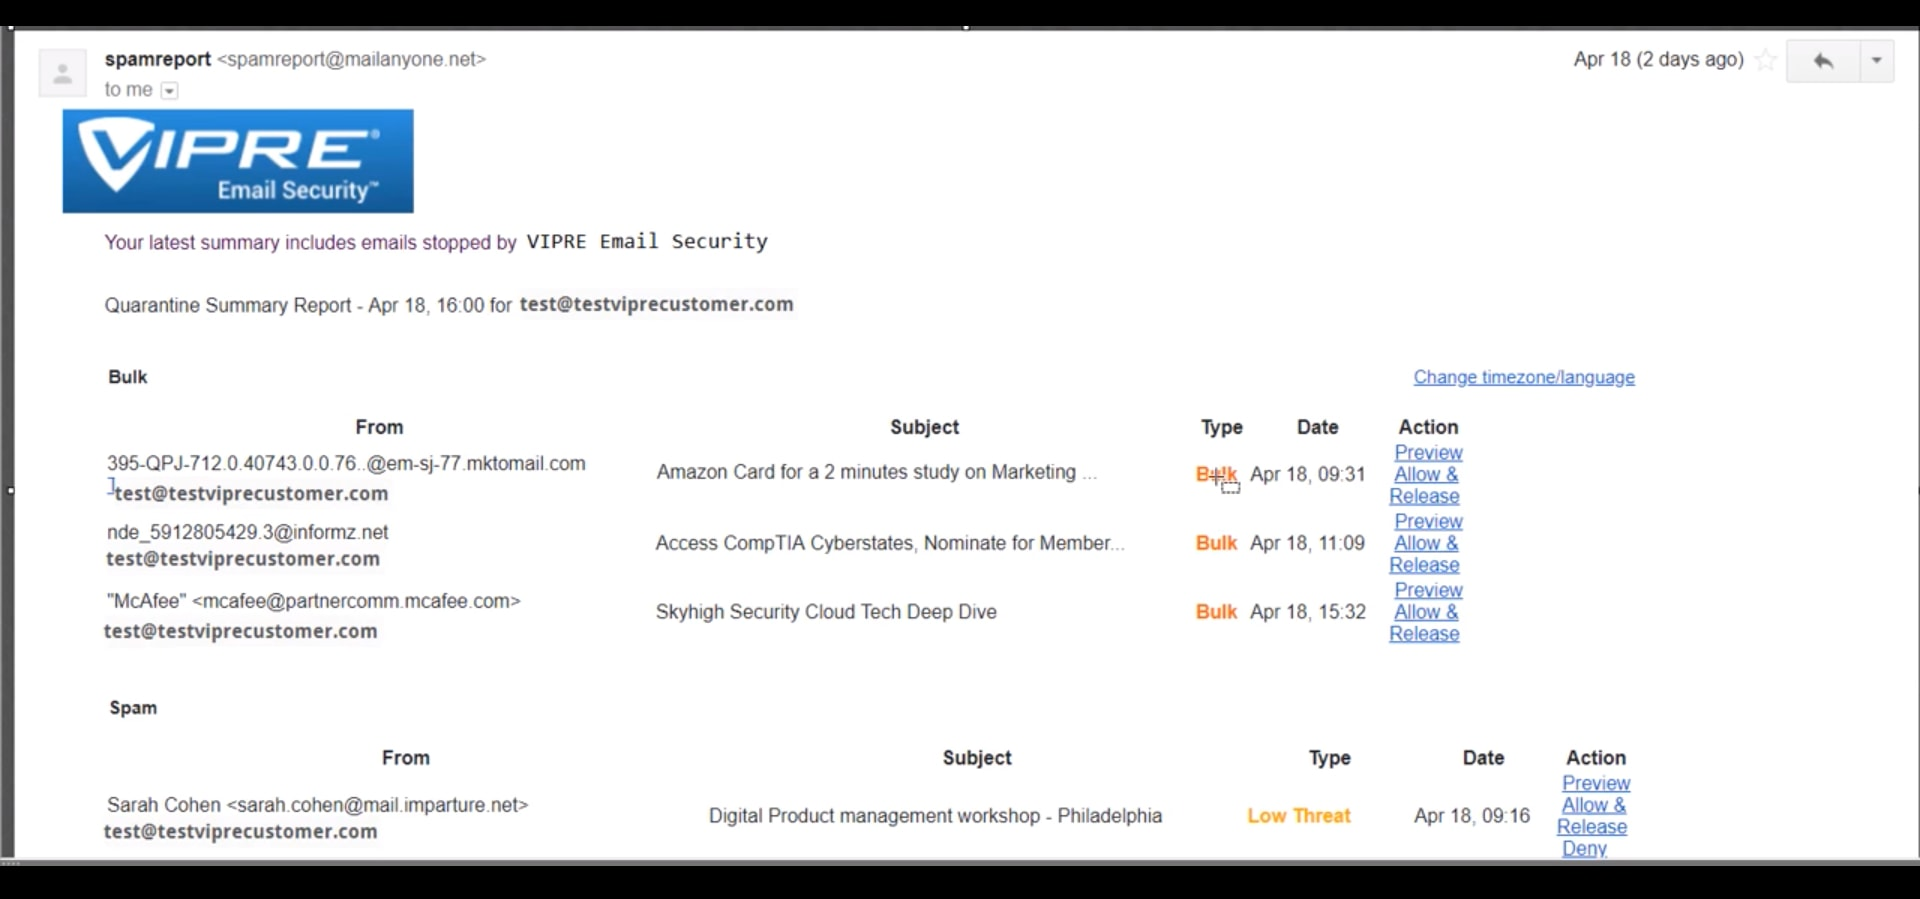 VIPRE email security continuity report